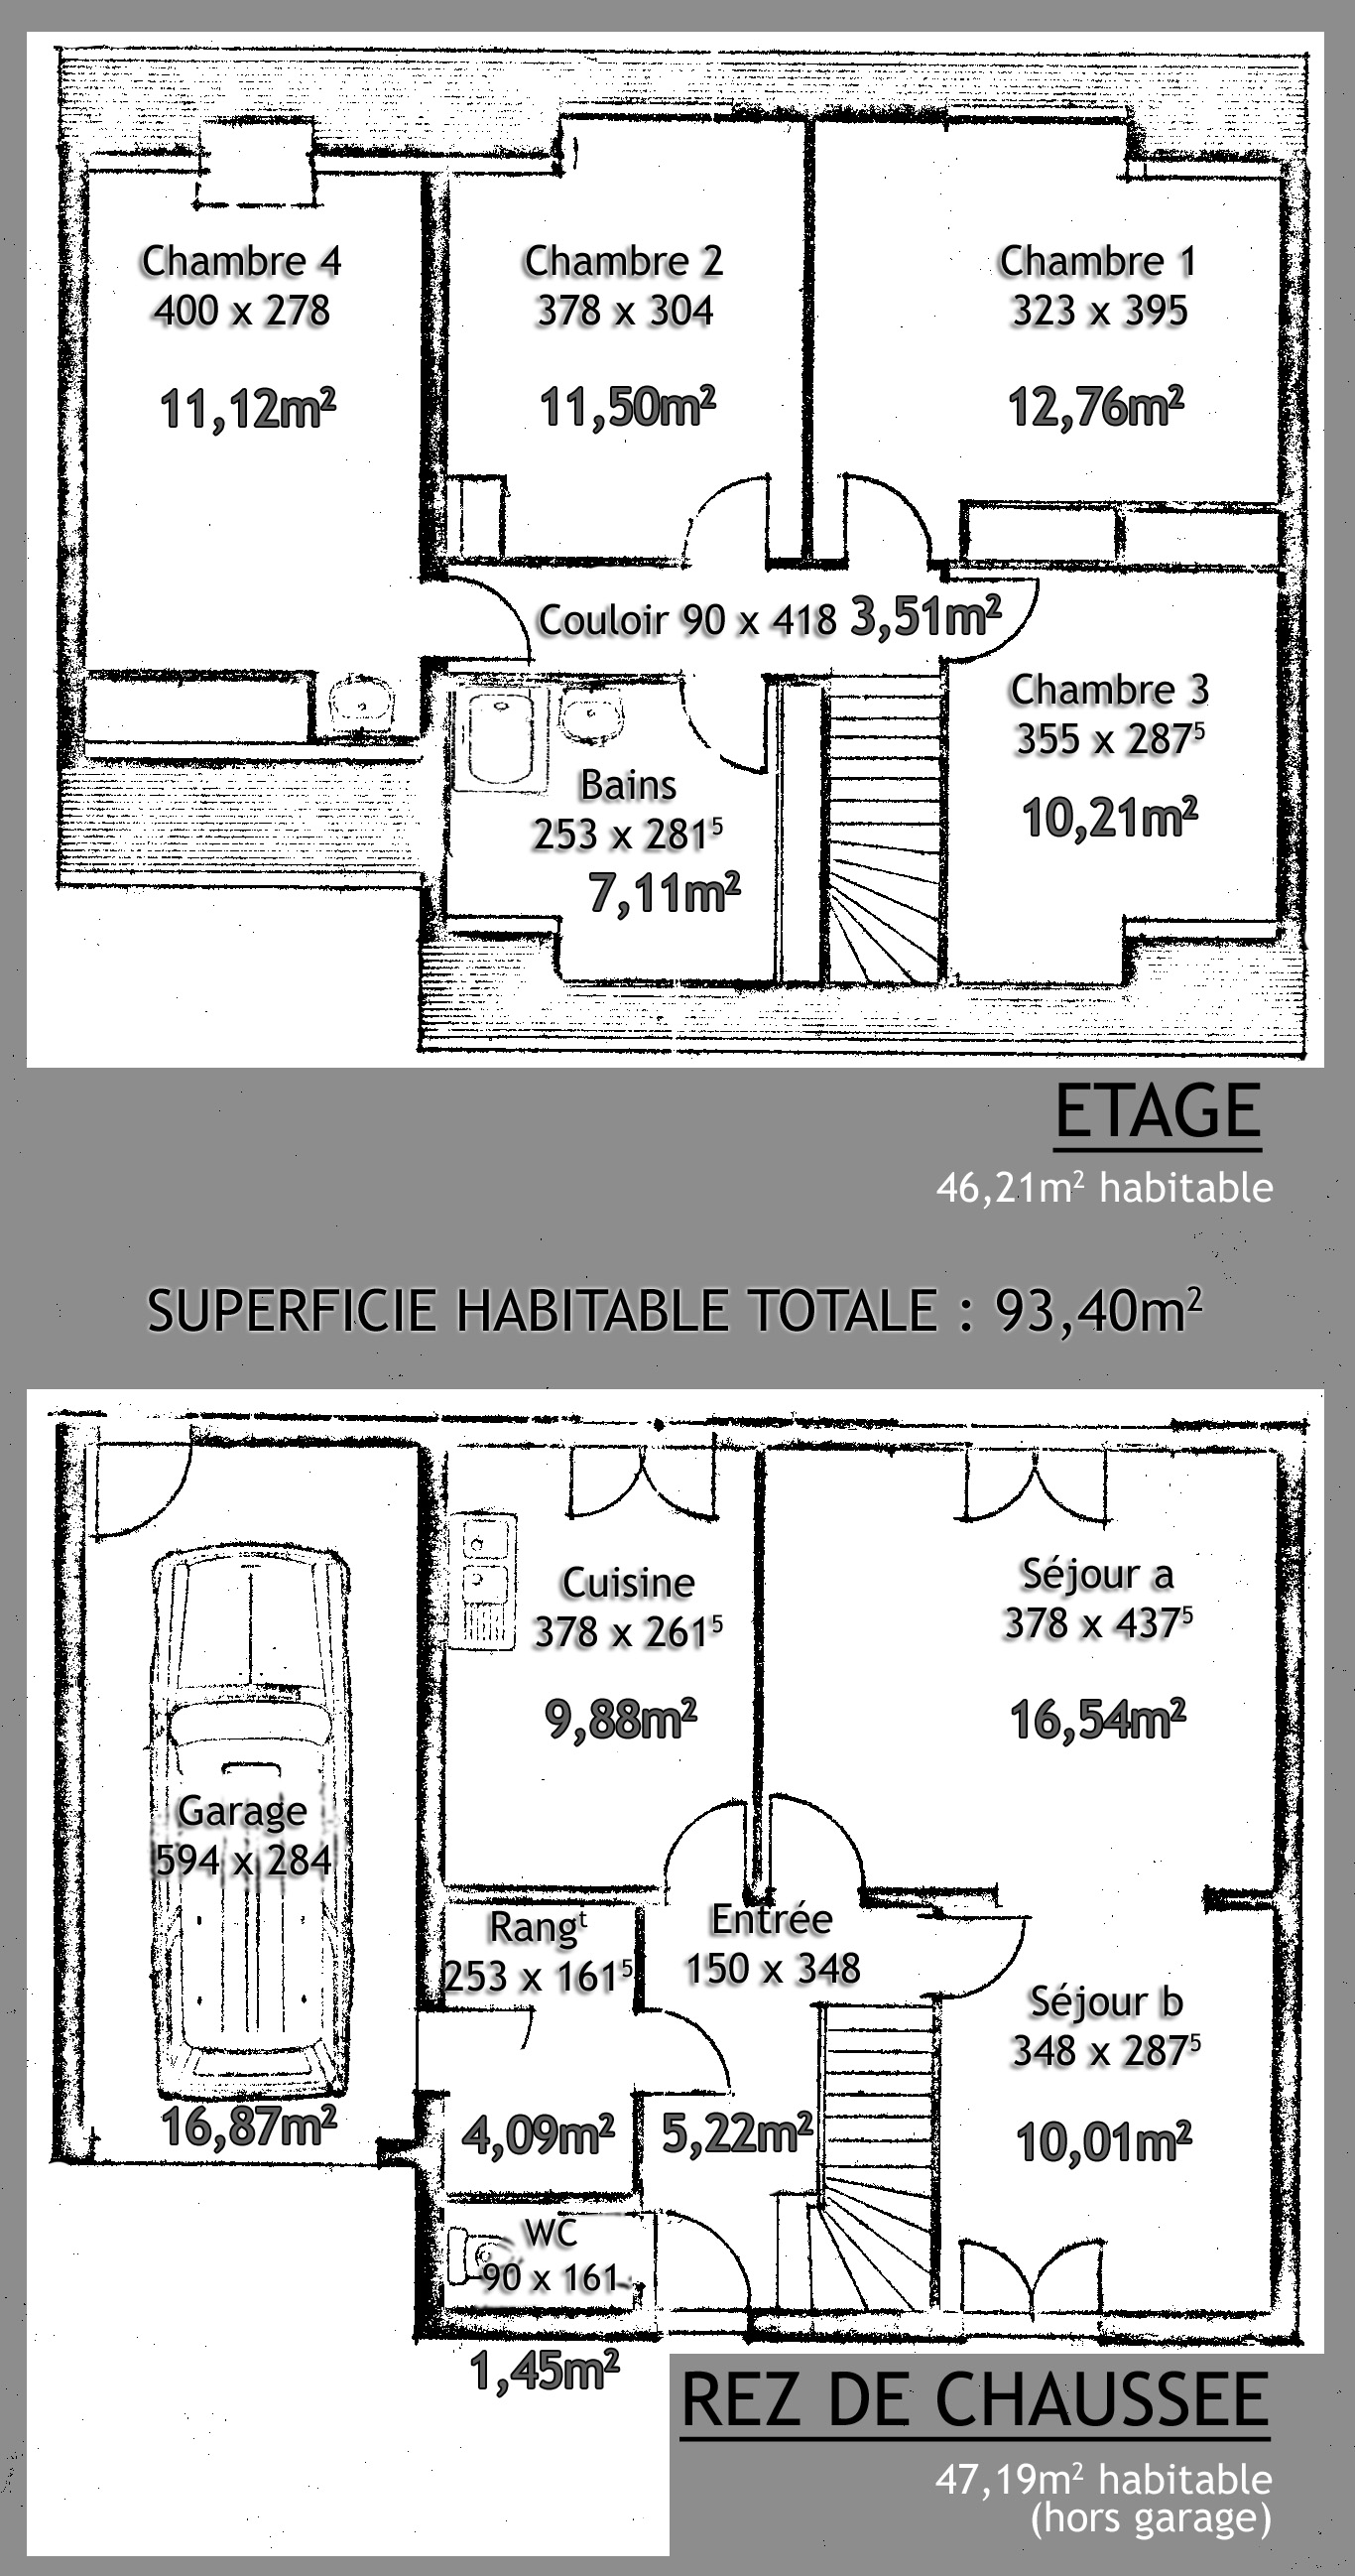 Plan de maison usa for Plan de maison zone llc